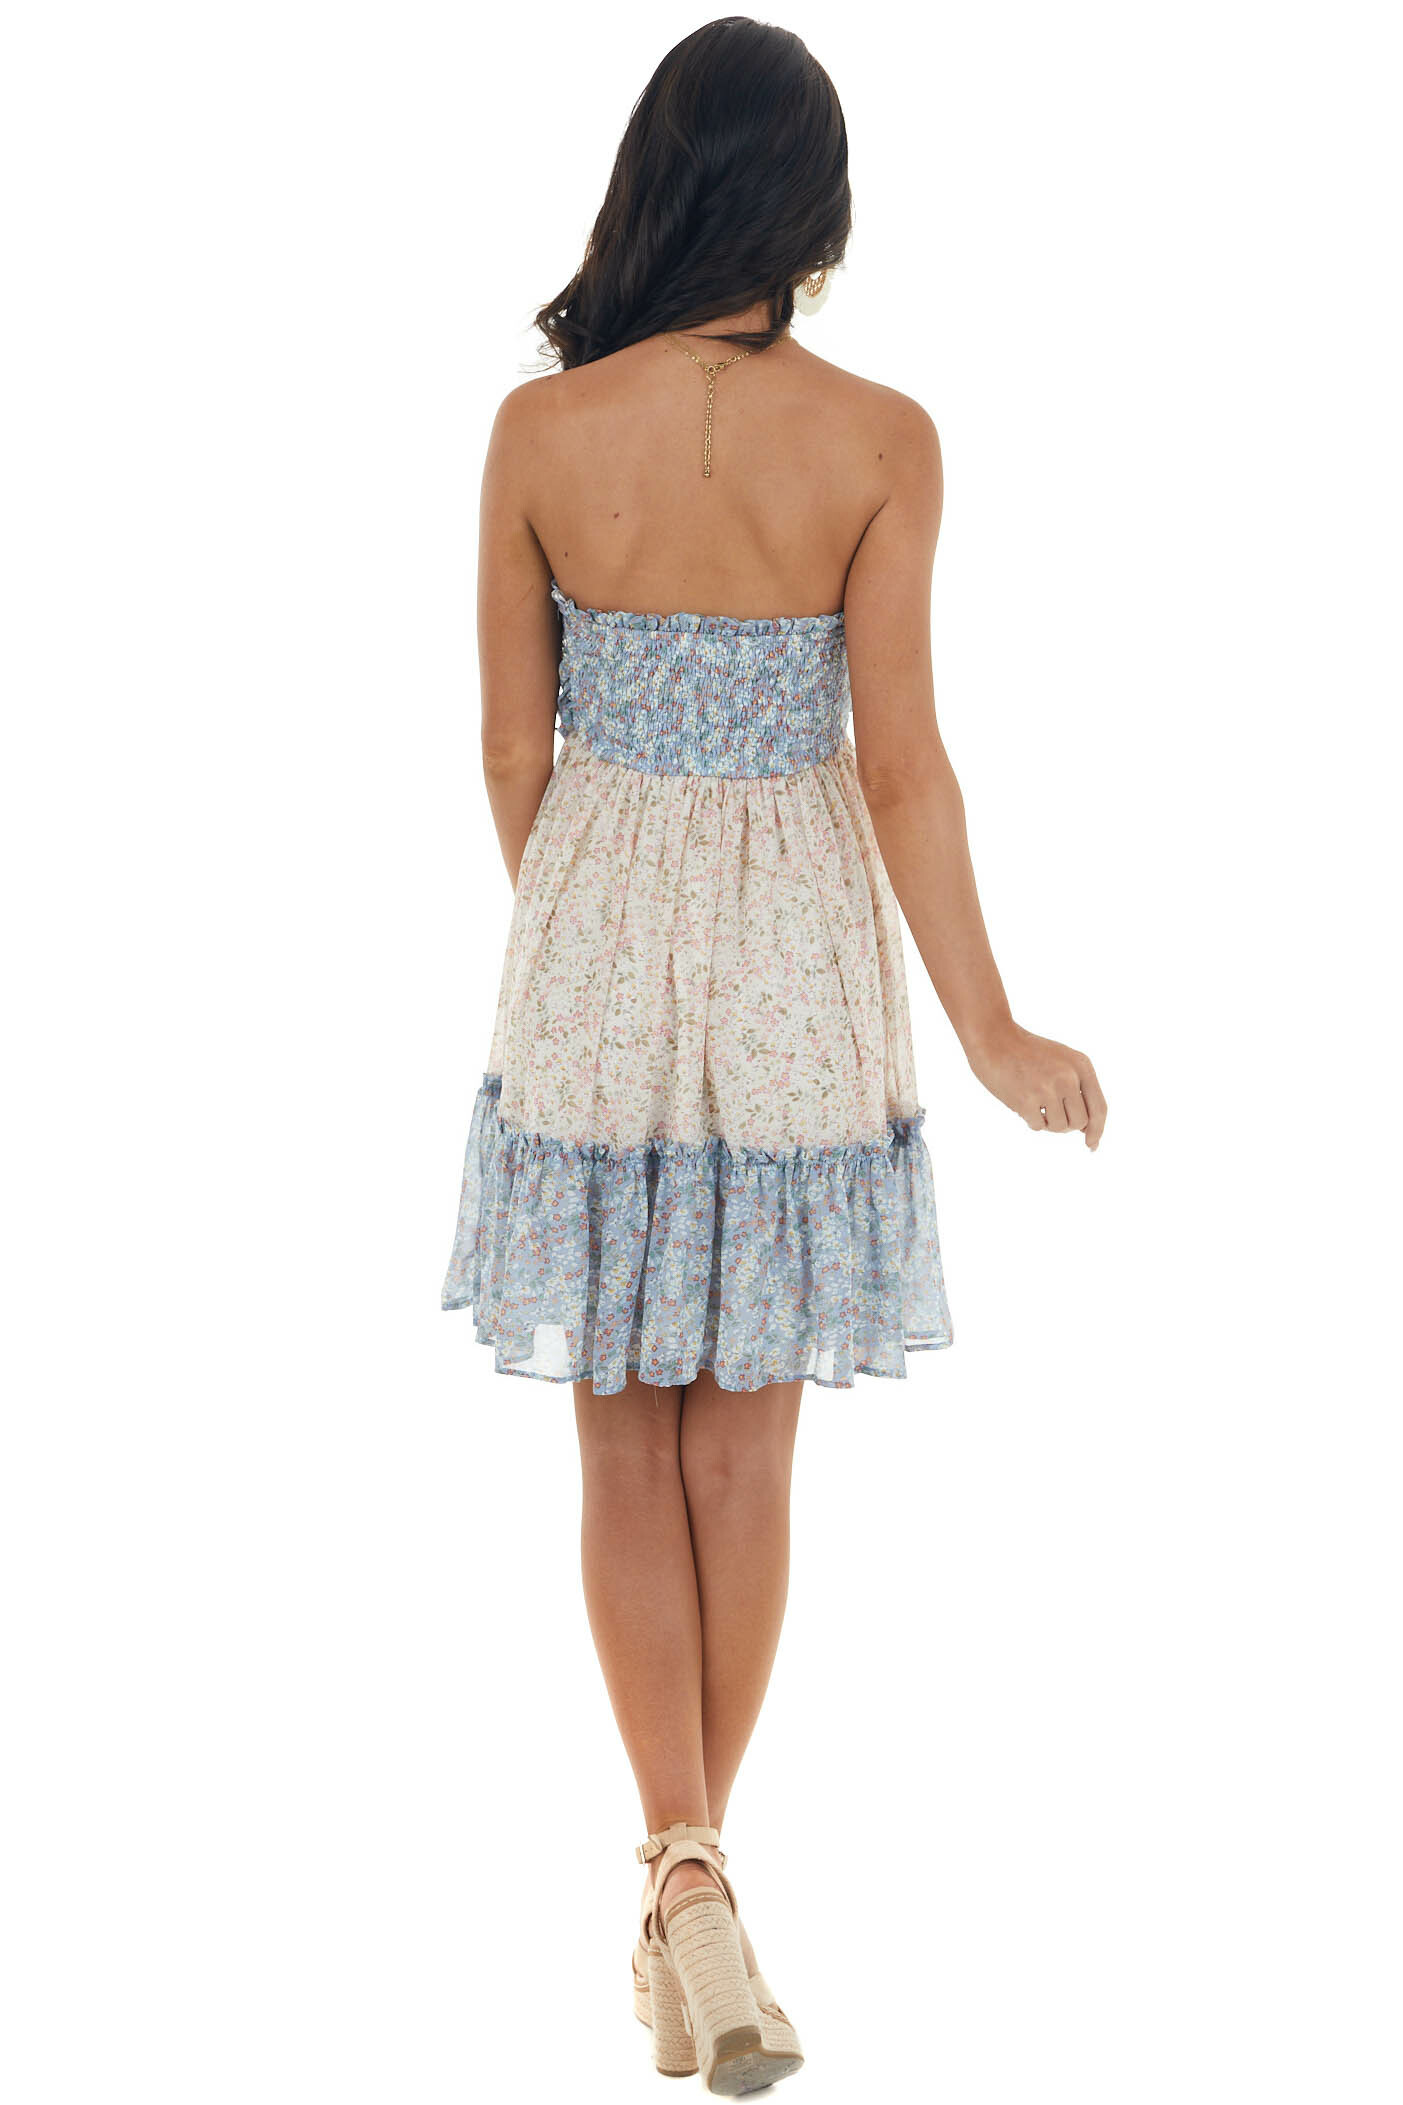 Dusty Blue Ditsy Floral Strapless Mini Dress